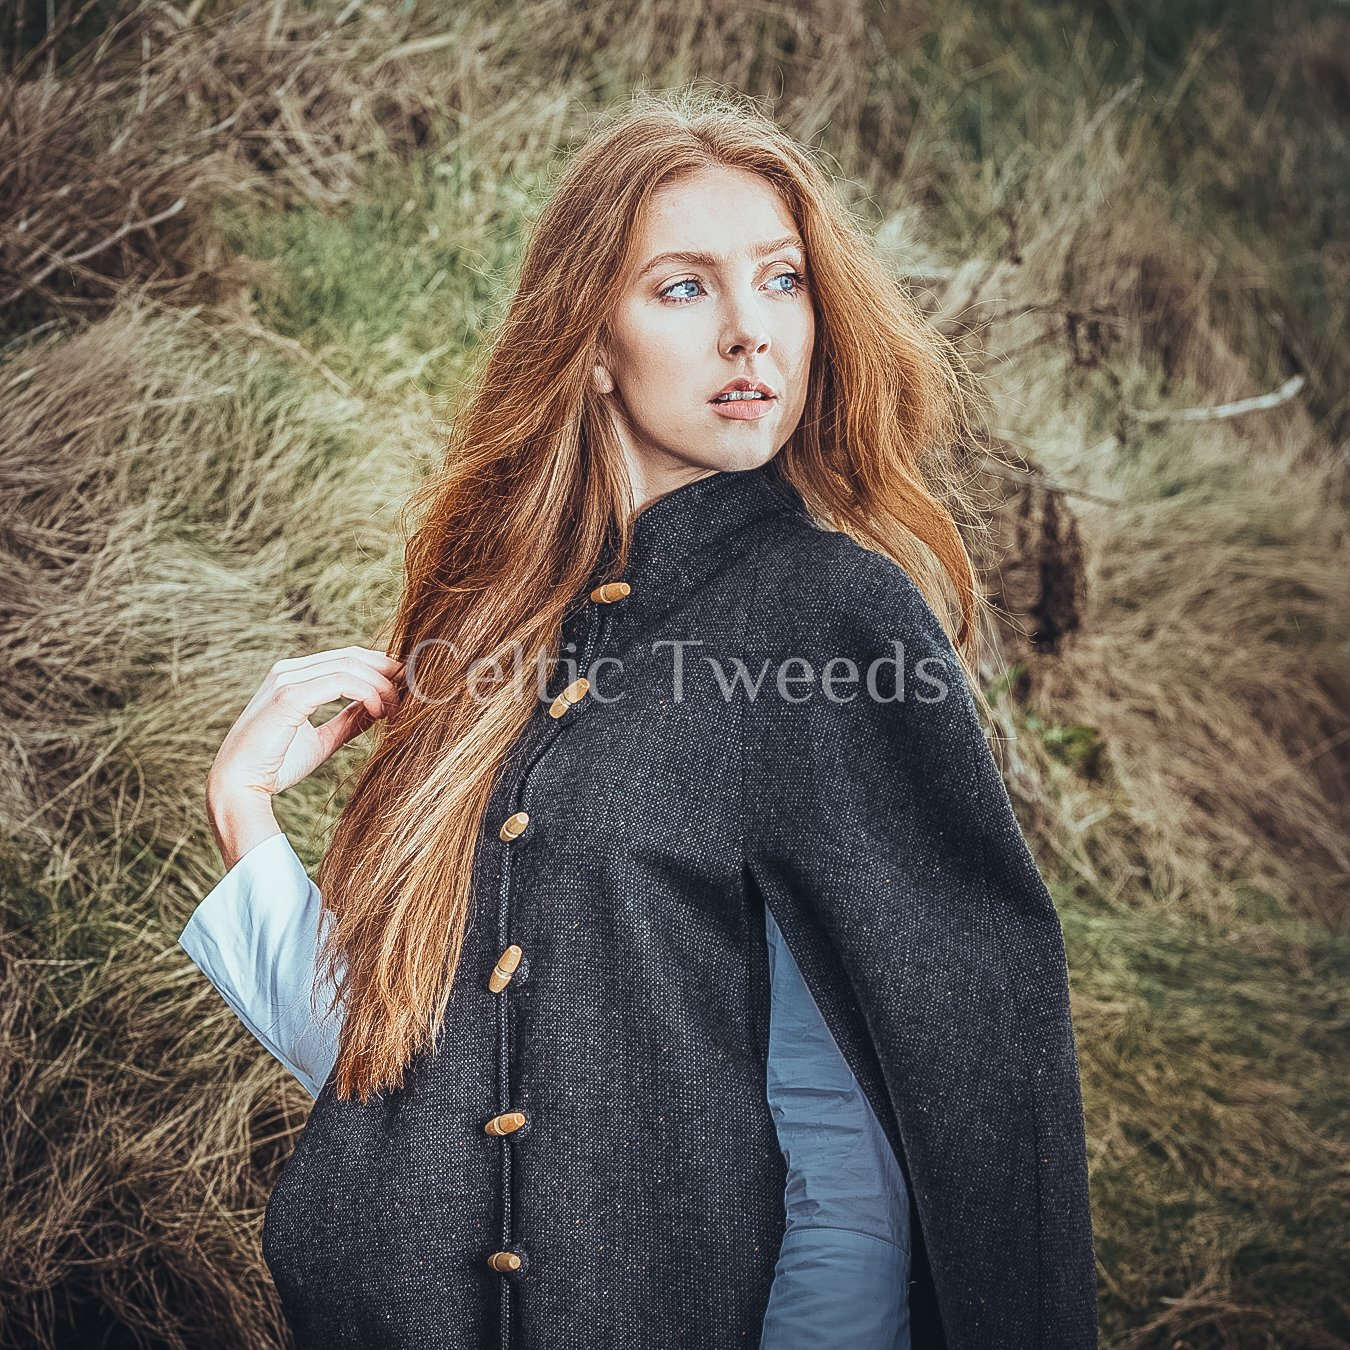 Celtic Ladies Tweed Collection Inspiration